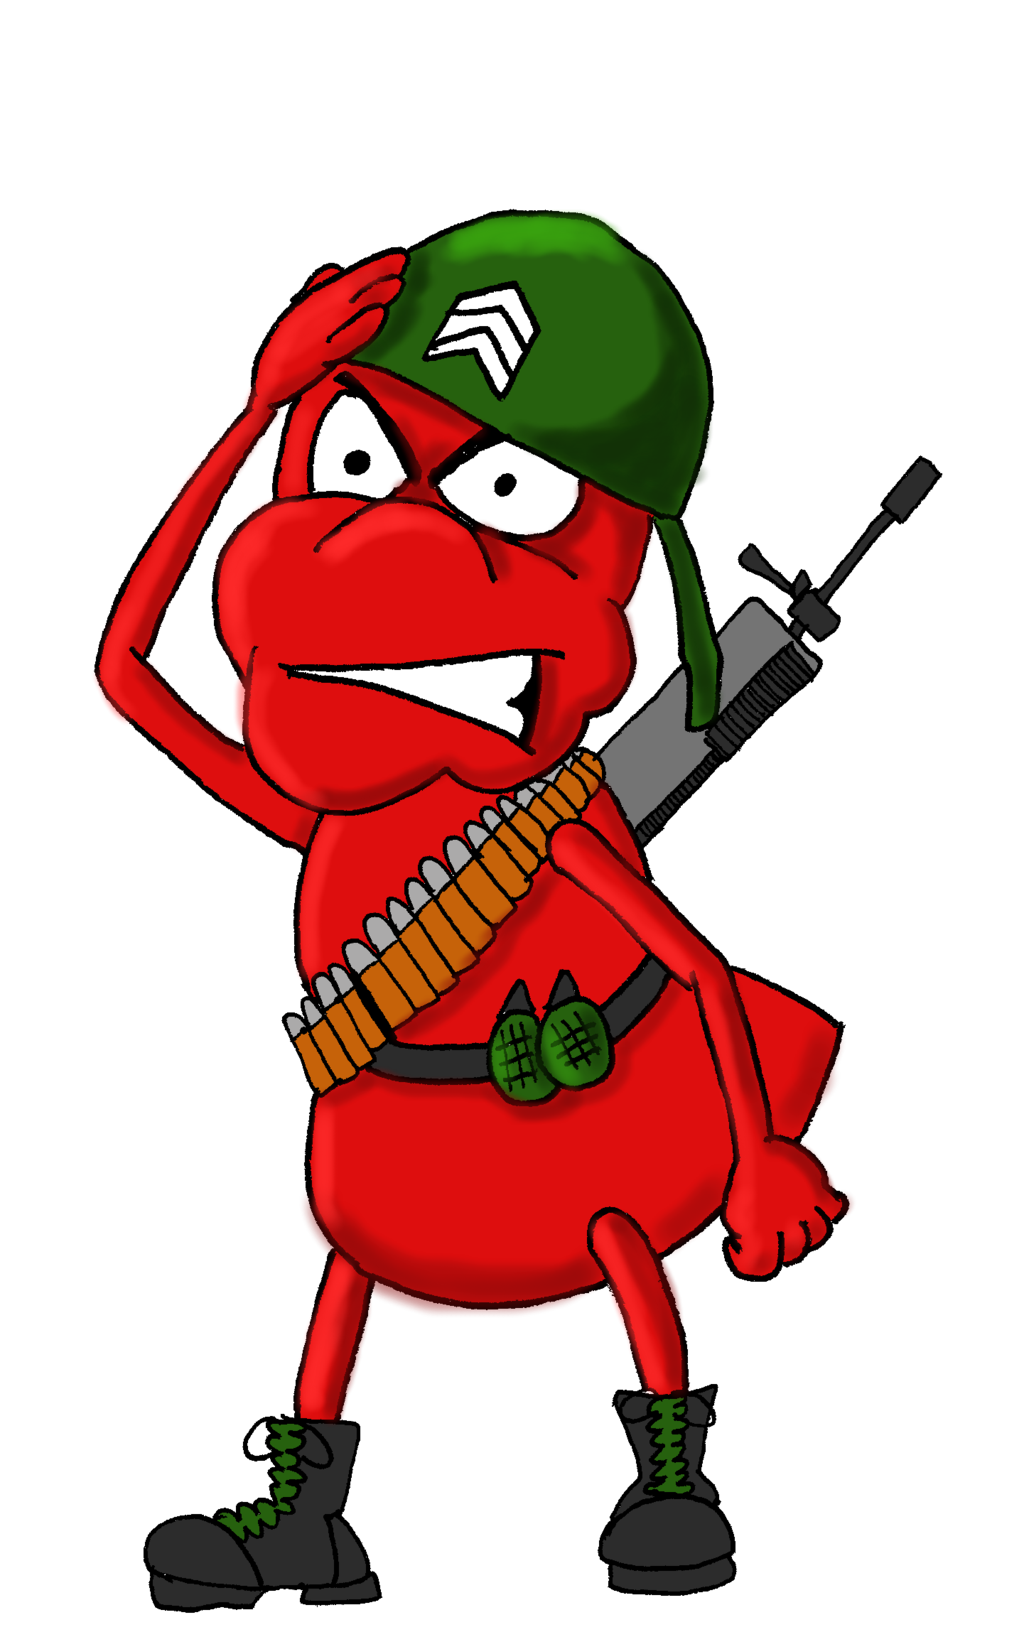 Ant by dan morrow. Military clipart army man